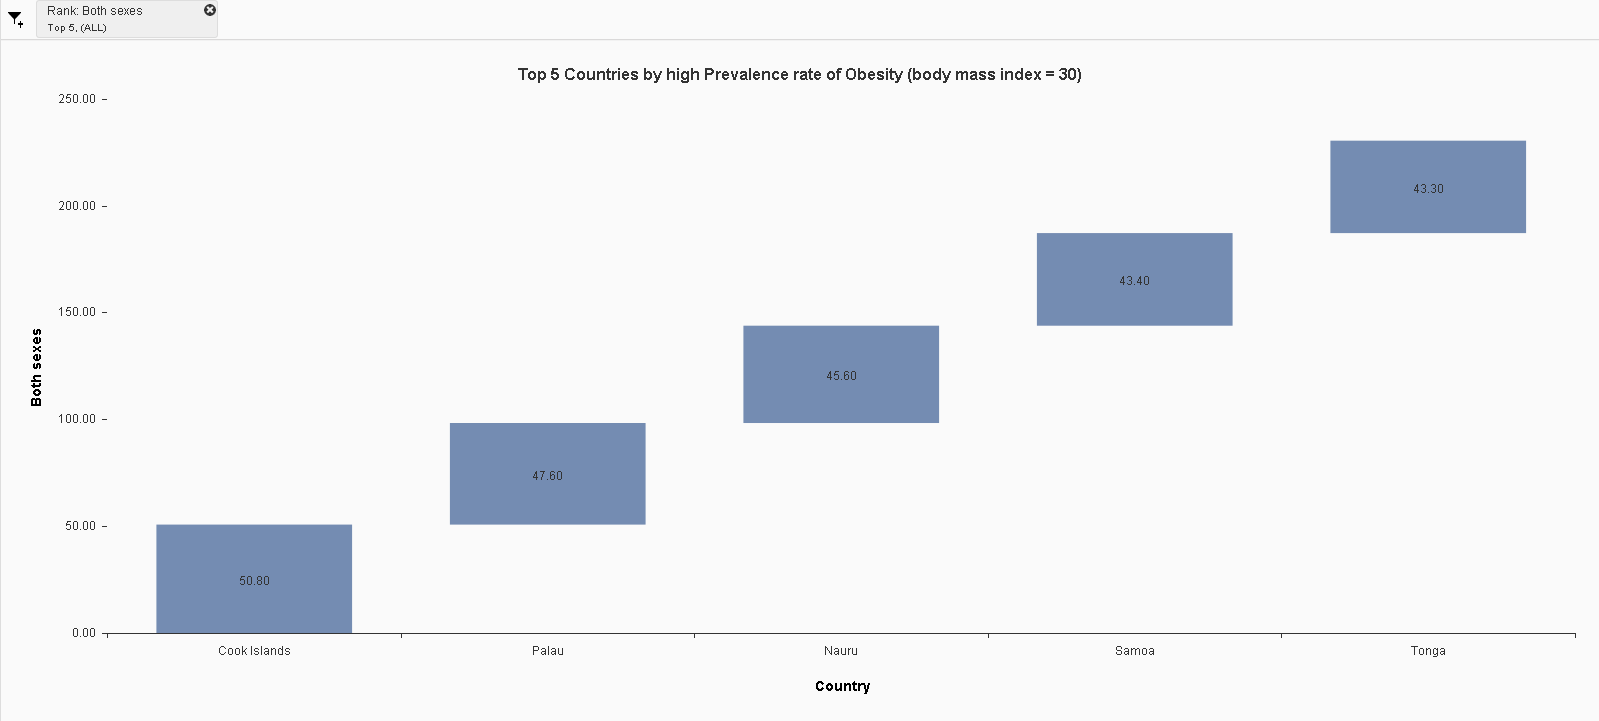 Top 5 Countries by high Prevalence rate of Obesity (body mass index = 30).png